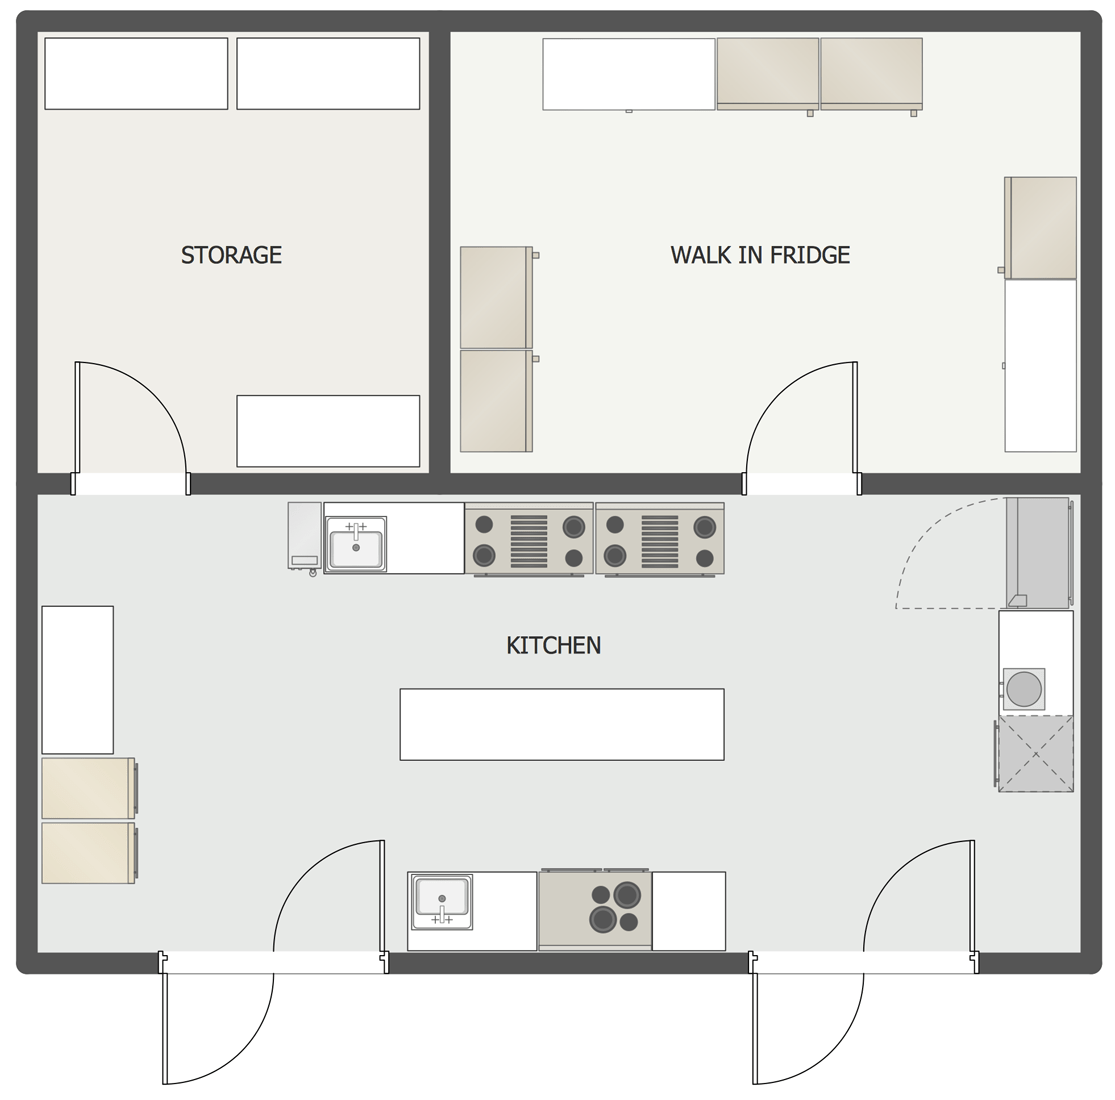 Kitchen Plans Cafe And Restaurant Floor Plan Solution Conceptdraw